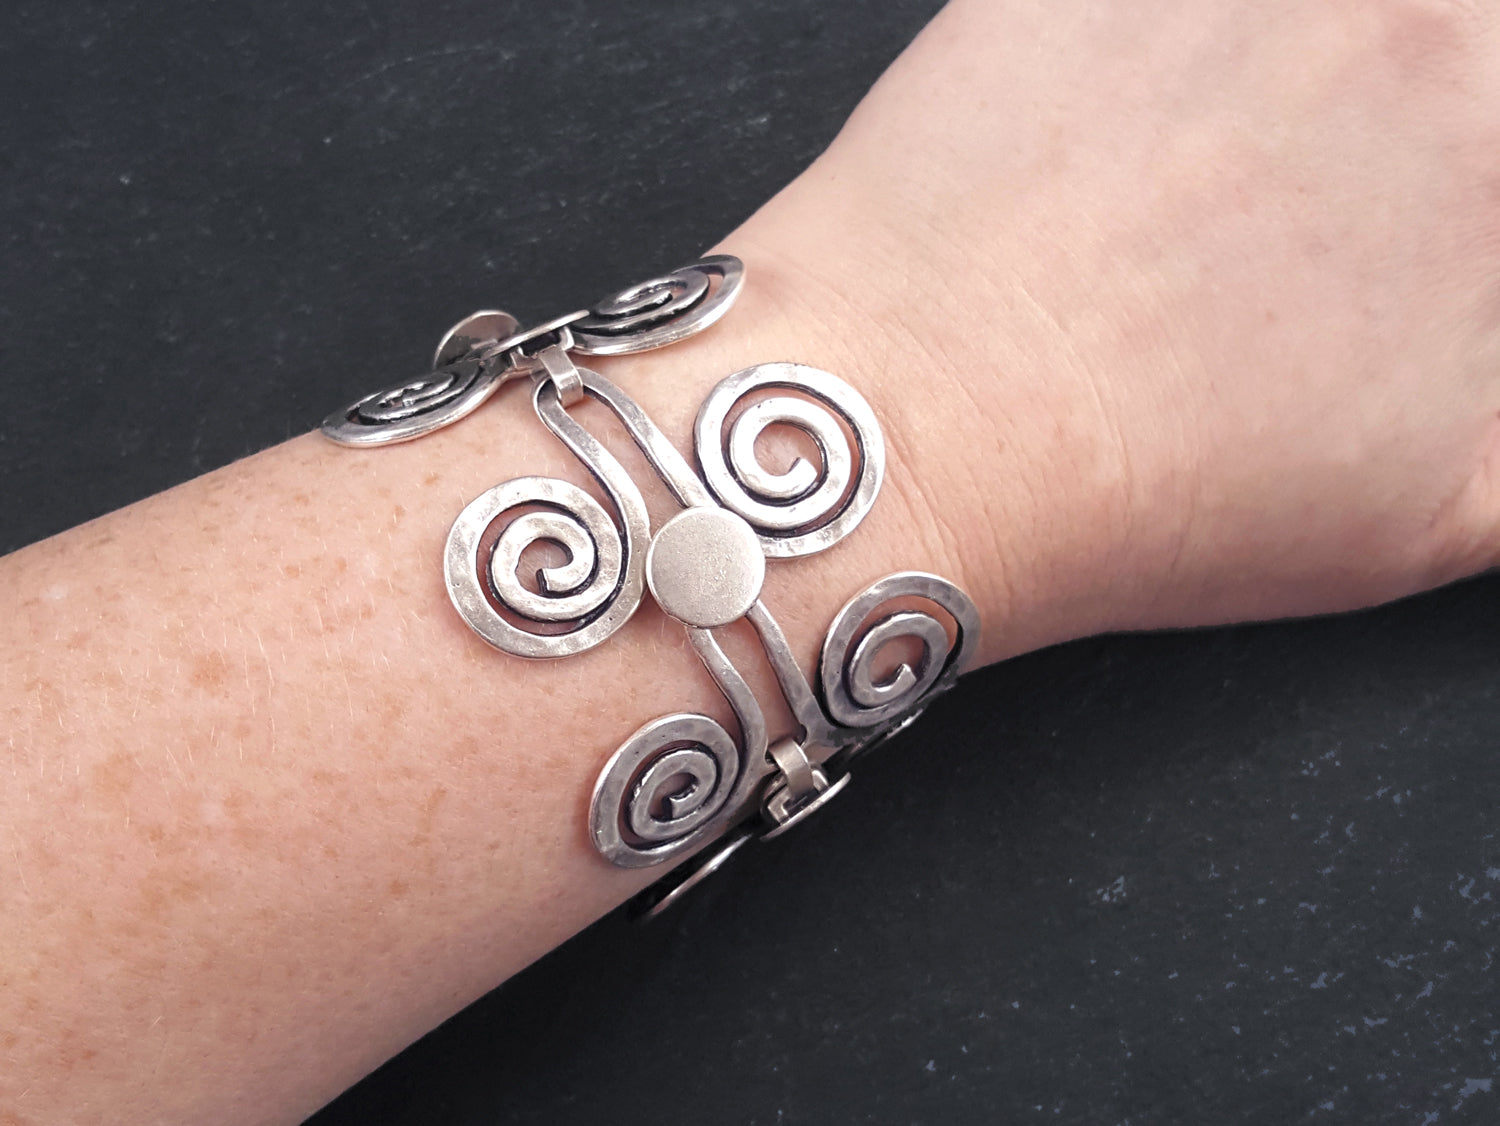 Authentic Turkish Style Jewelry Artisan Hammered Spiral Scroll Ethnic Tribal Statement Bracelet